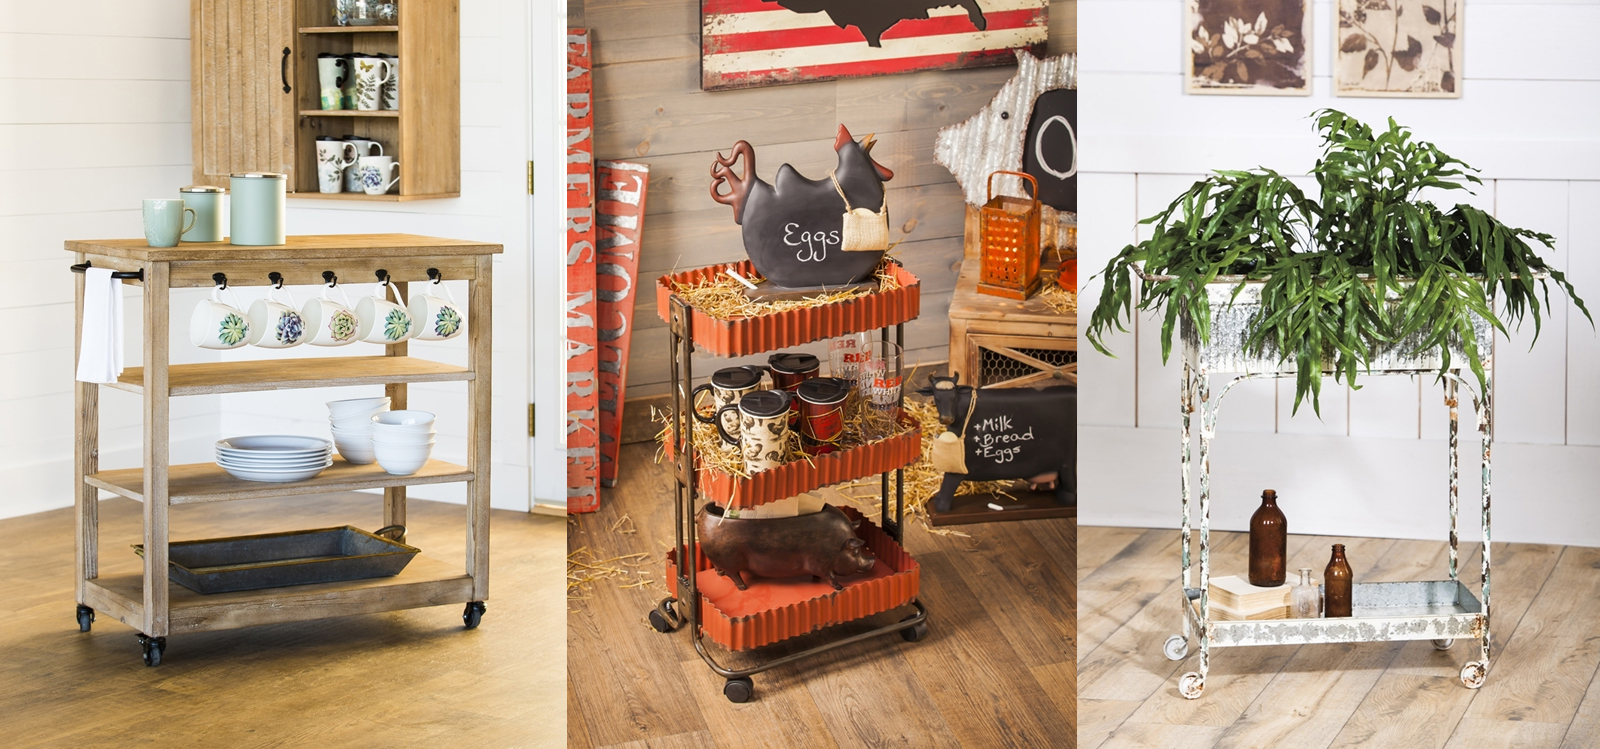 30 Ways to Use a Tiered Cart